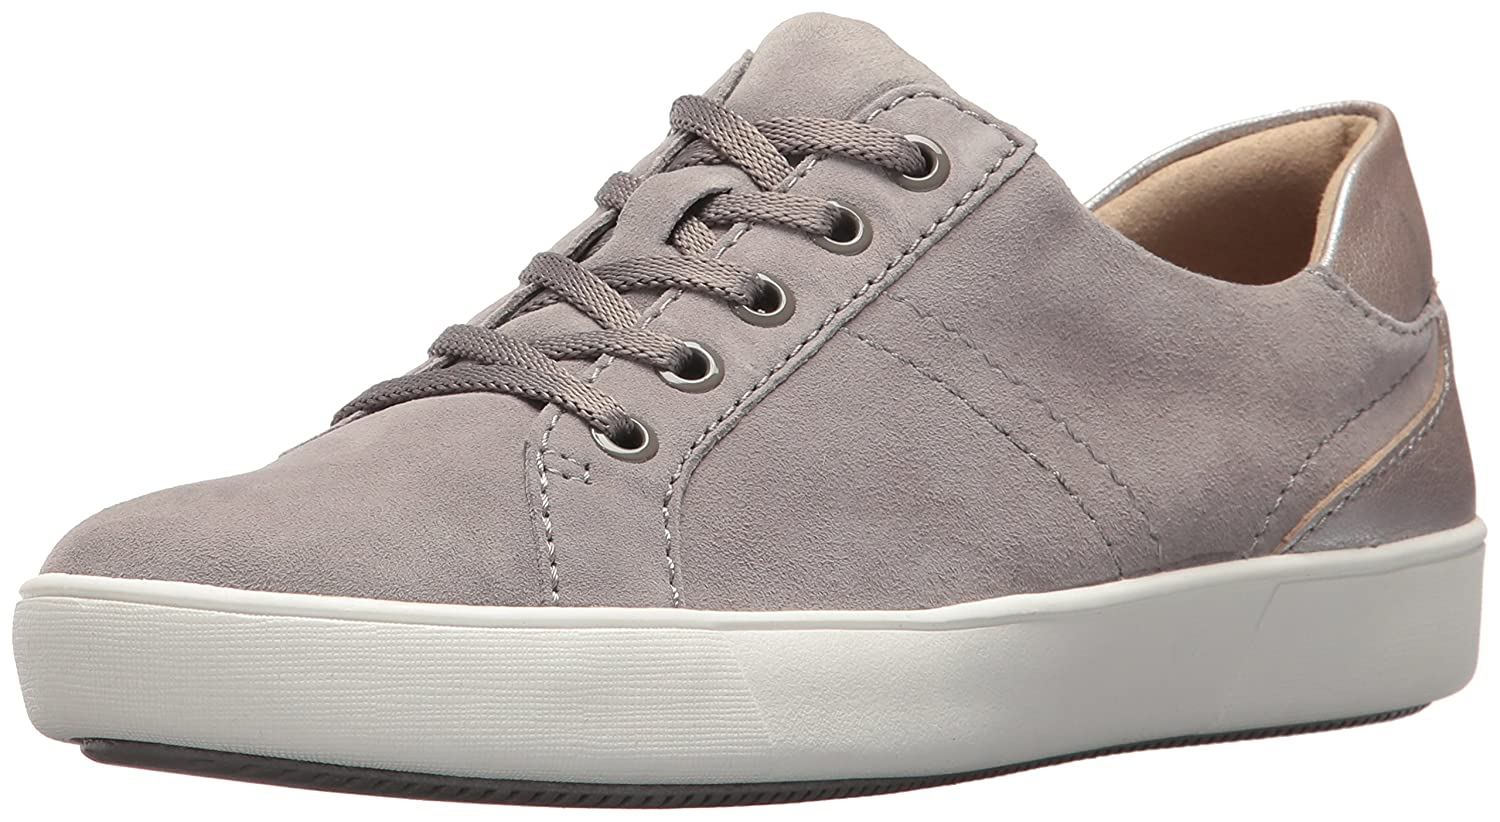 Naturalizer Women's Morrison Sneaker B07573DKKW 6.5 W US|Grey